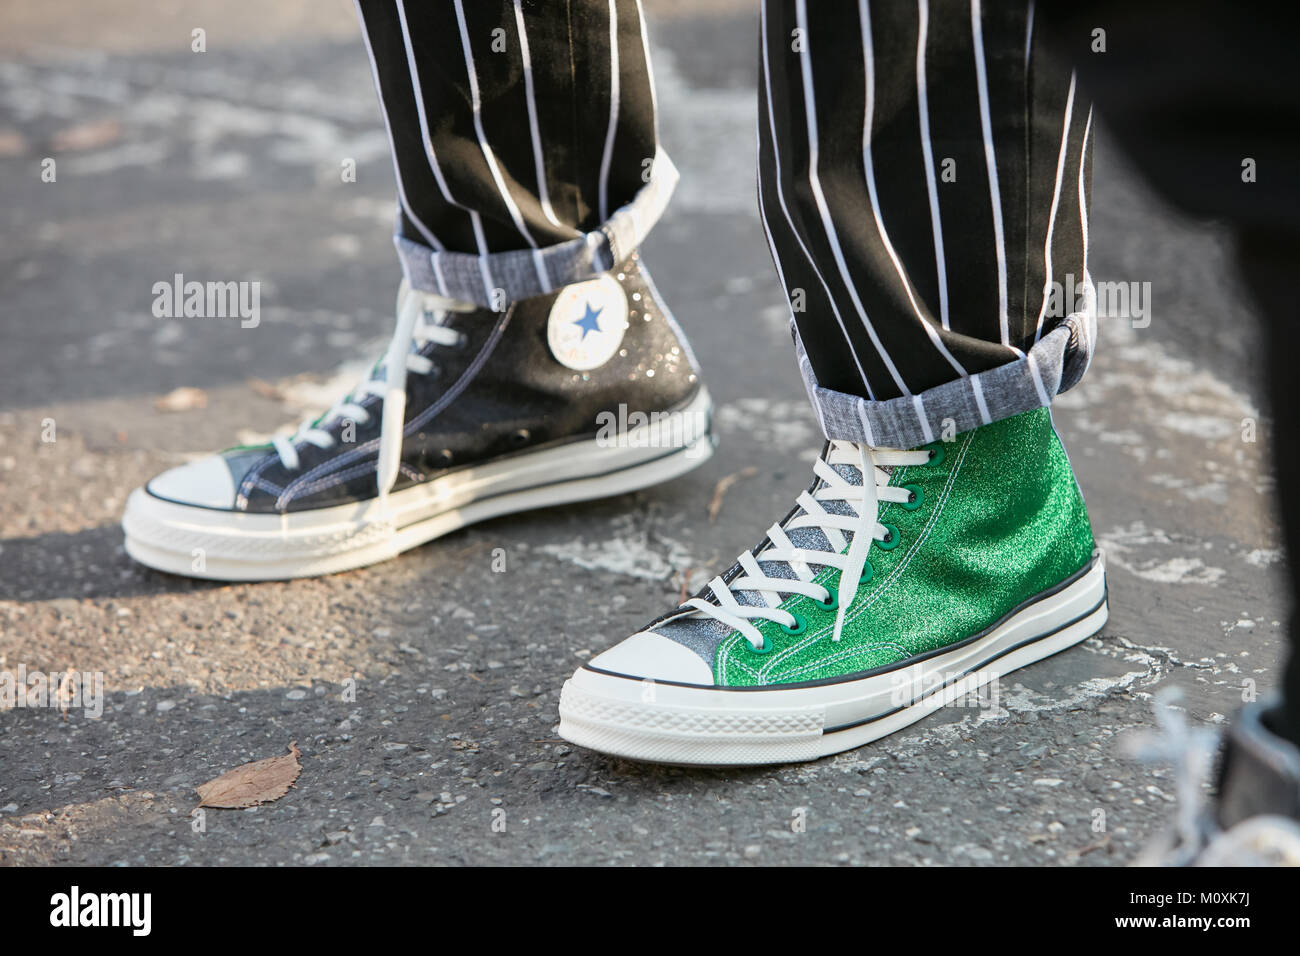 de00a728 MILAN - JANUARY 13: Man with green Converse All Stars glitter sneakers and  black and white striped trousers before Diesel Black Gold fashion show, Mil